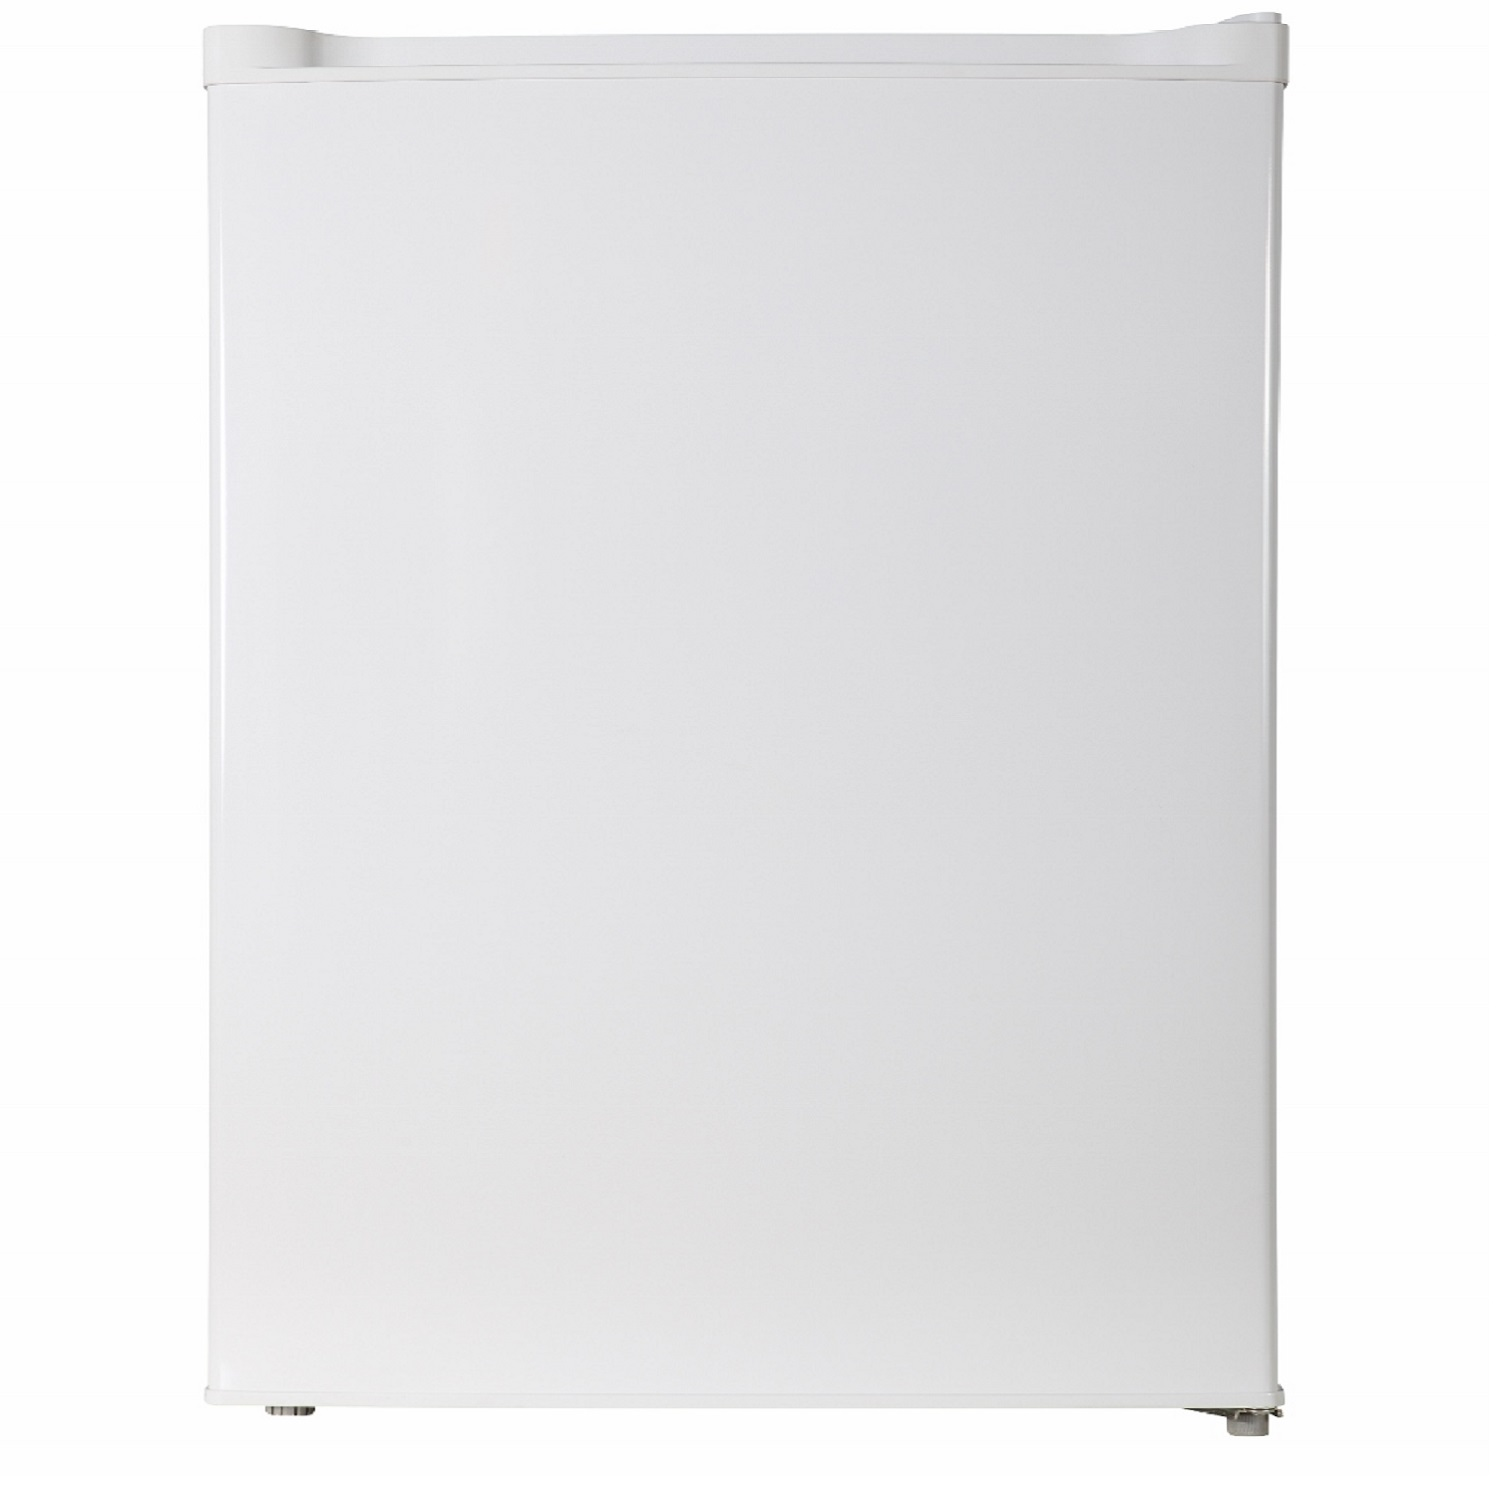 Equator Midea 3.0 cu.ft <br> Defrost Upright Freezer White